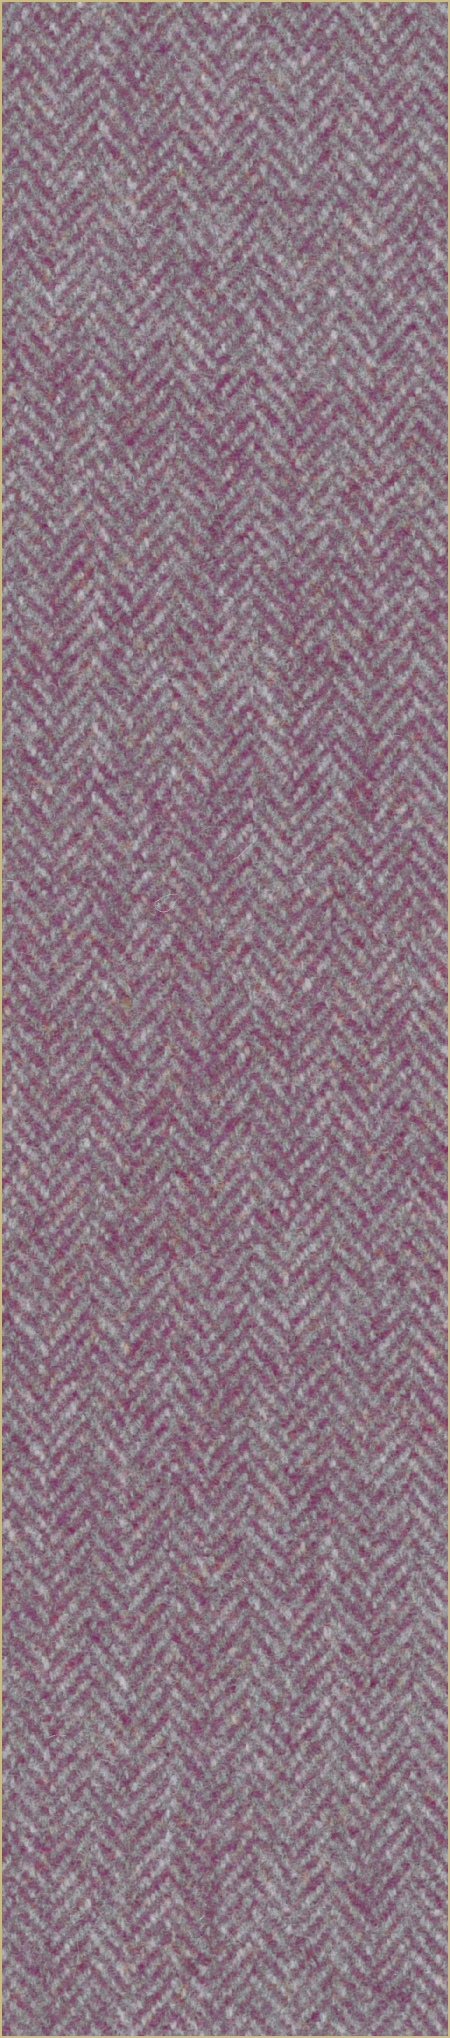 Cotswold Woollen Weavers' Upholstery Cloth